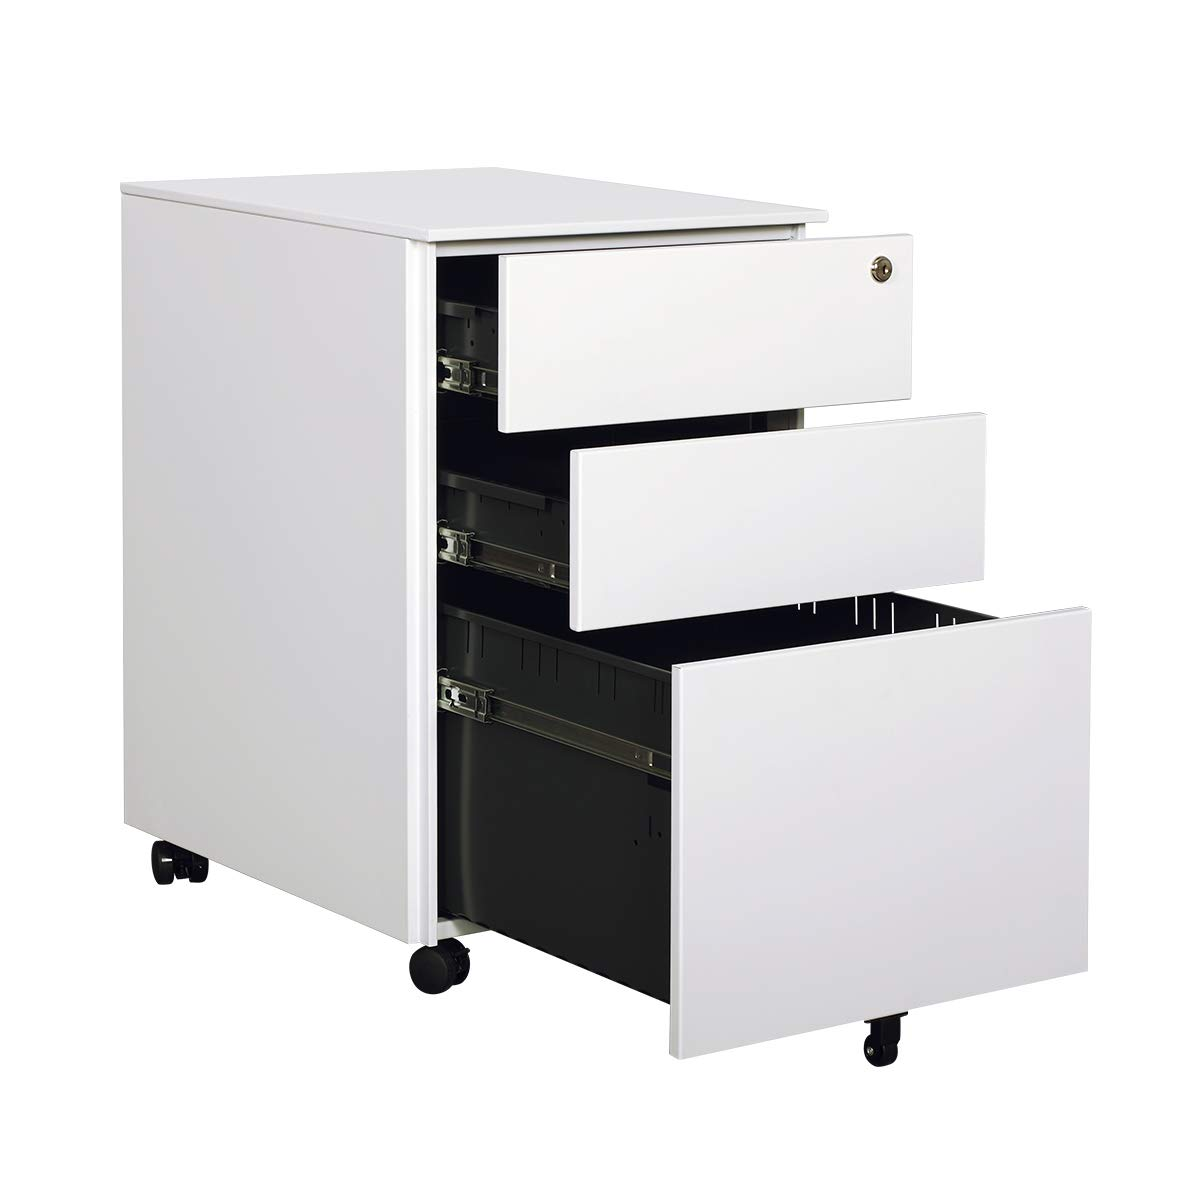 DEVAISE Mobile Vertical File Cabinet 3 Drawer with Lock for Office/Black 002